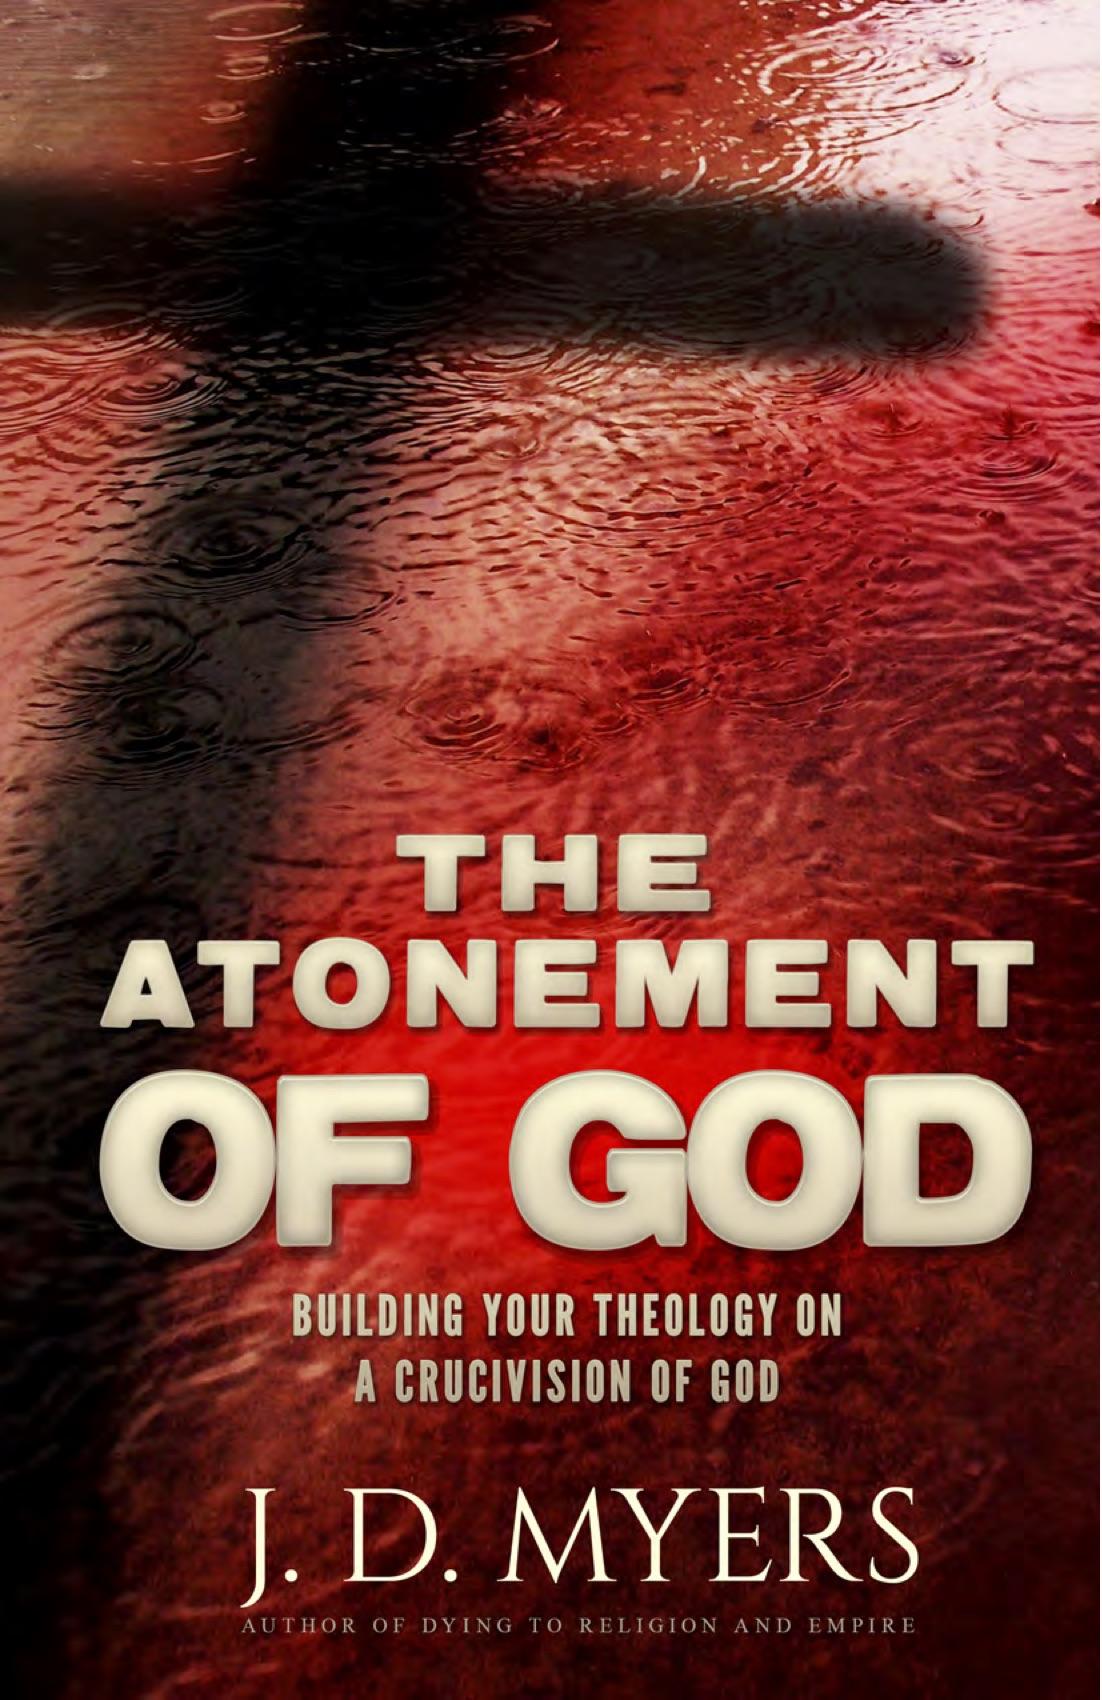 The Atonement of God by J.D. Myers